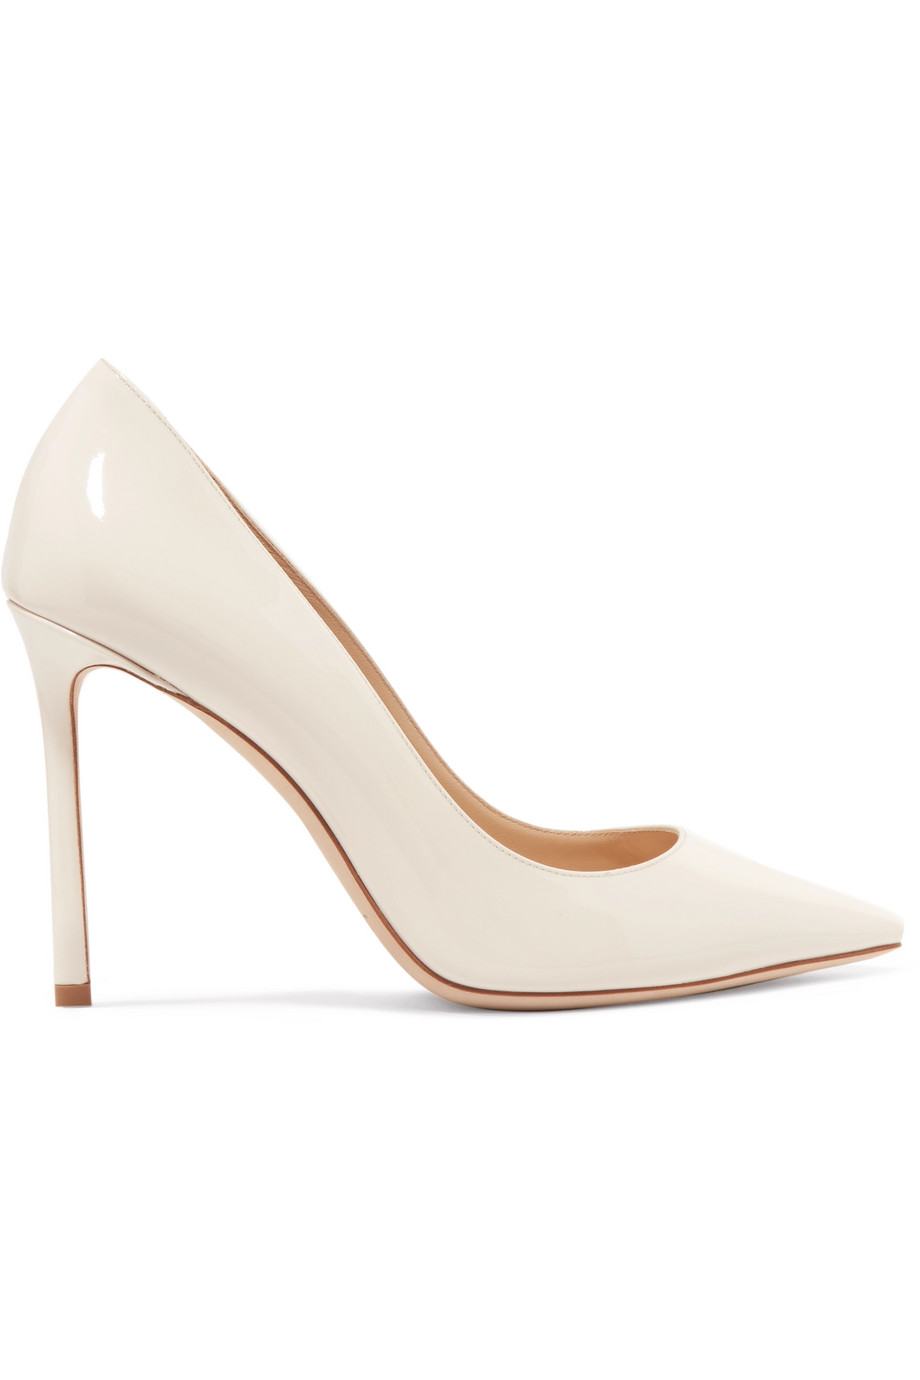 Exact Product: Romy 100 patent leather pumps, Brand: Jimmy Choo, Available on: net-a-porter.com, Price: $595